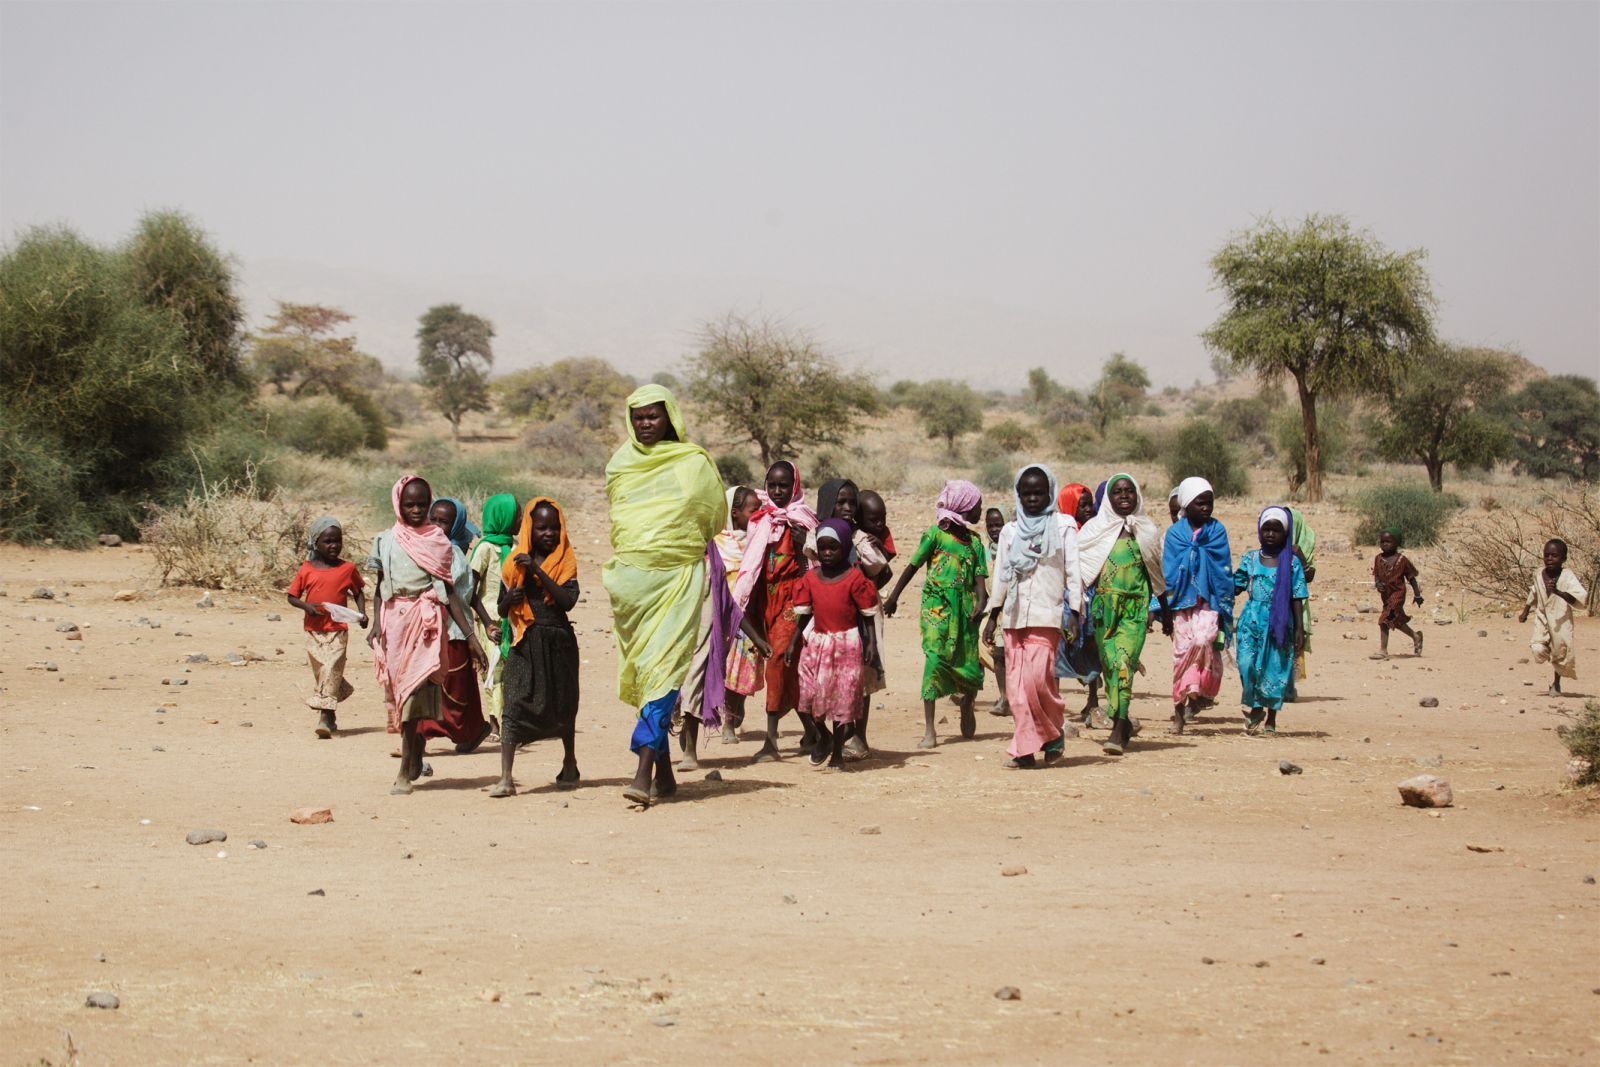 UNAMID and Agencies Deliver Aid to Darfur Area Isolated by Fighting